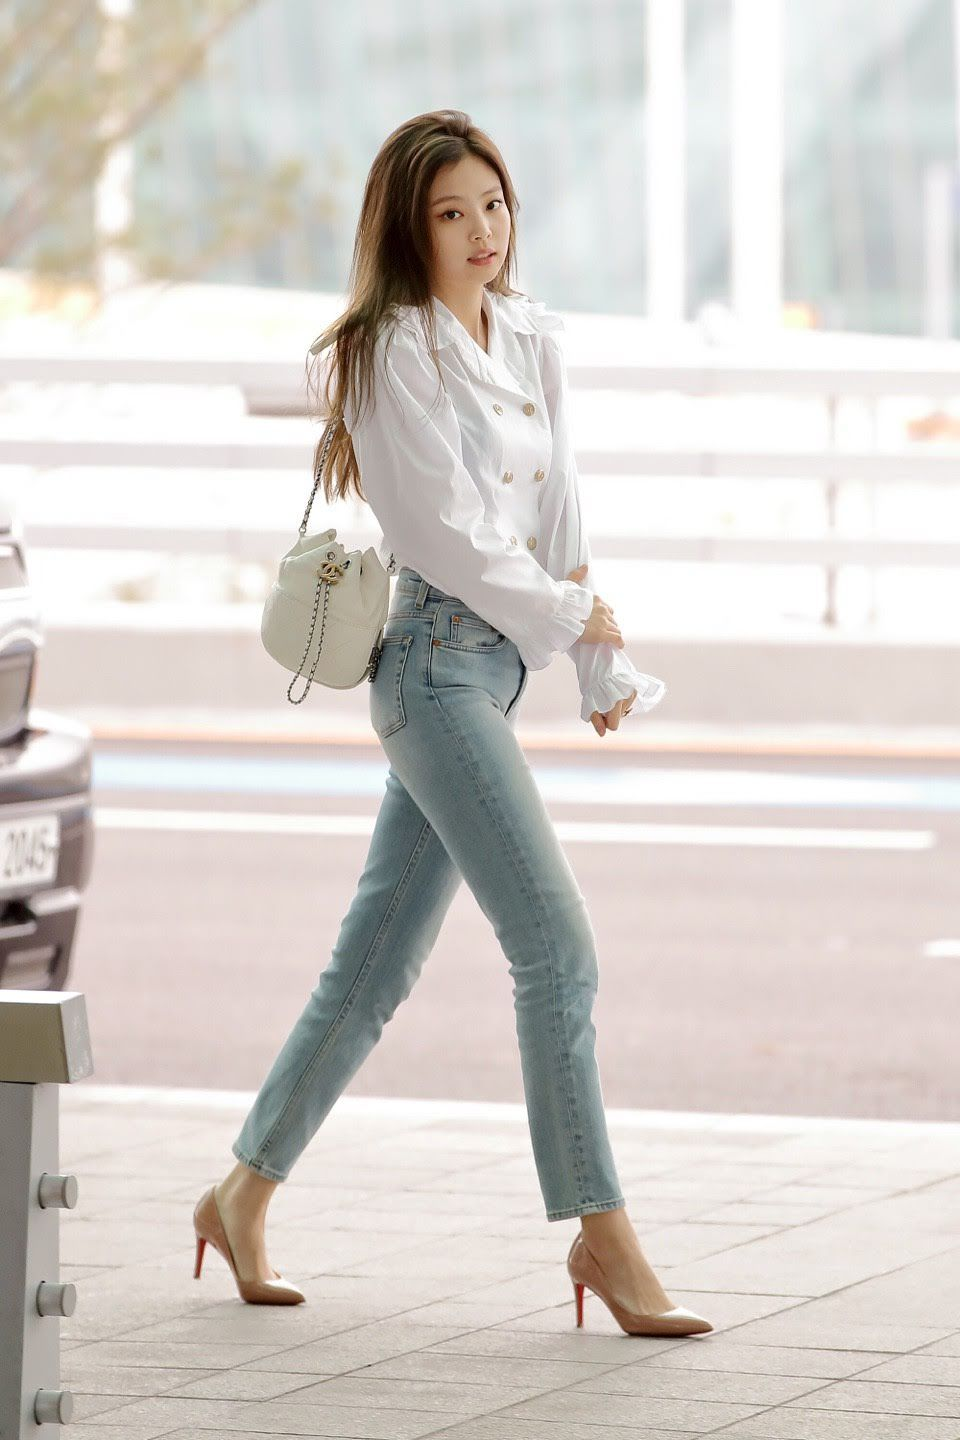 Blackpink S Jennie Is Always Dressed To Impressed And These Photos